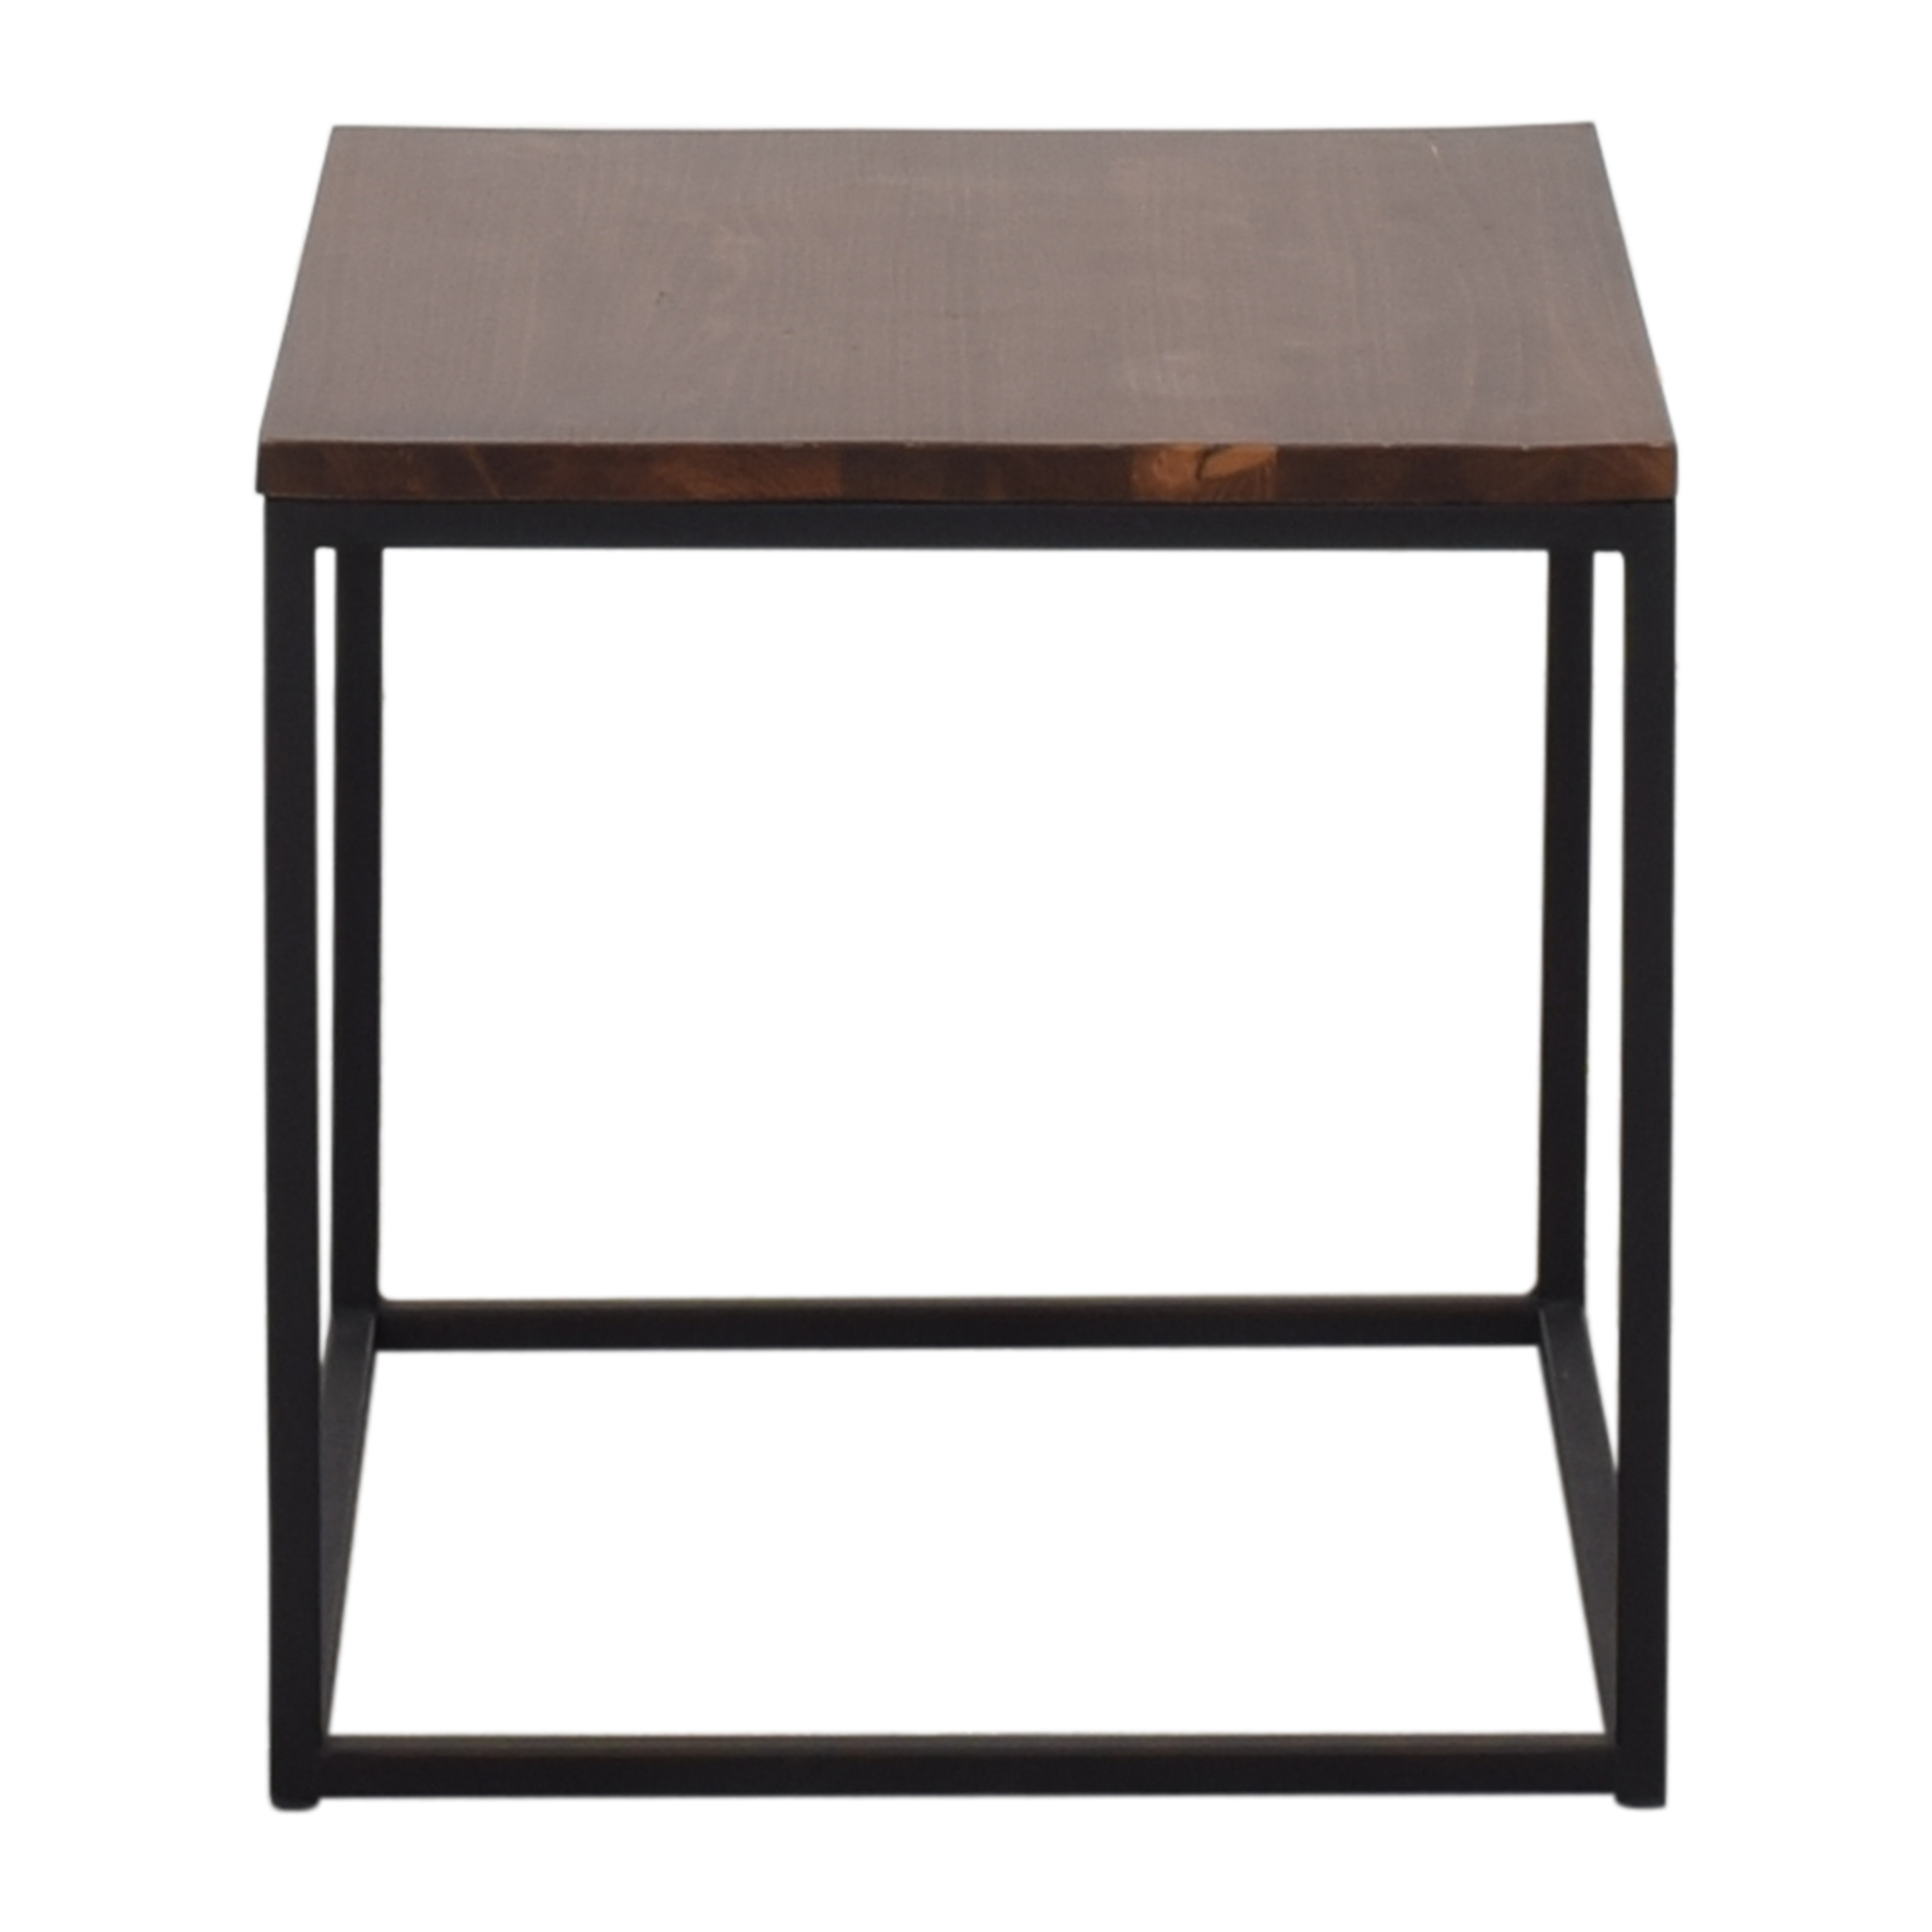 Box Frame Side Table dark brown